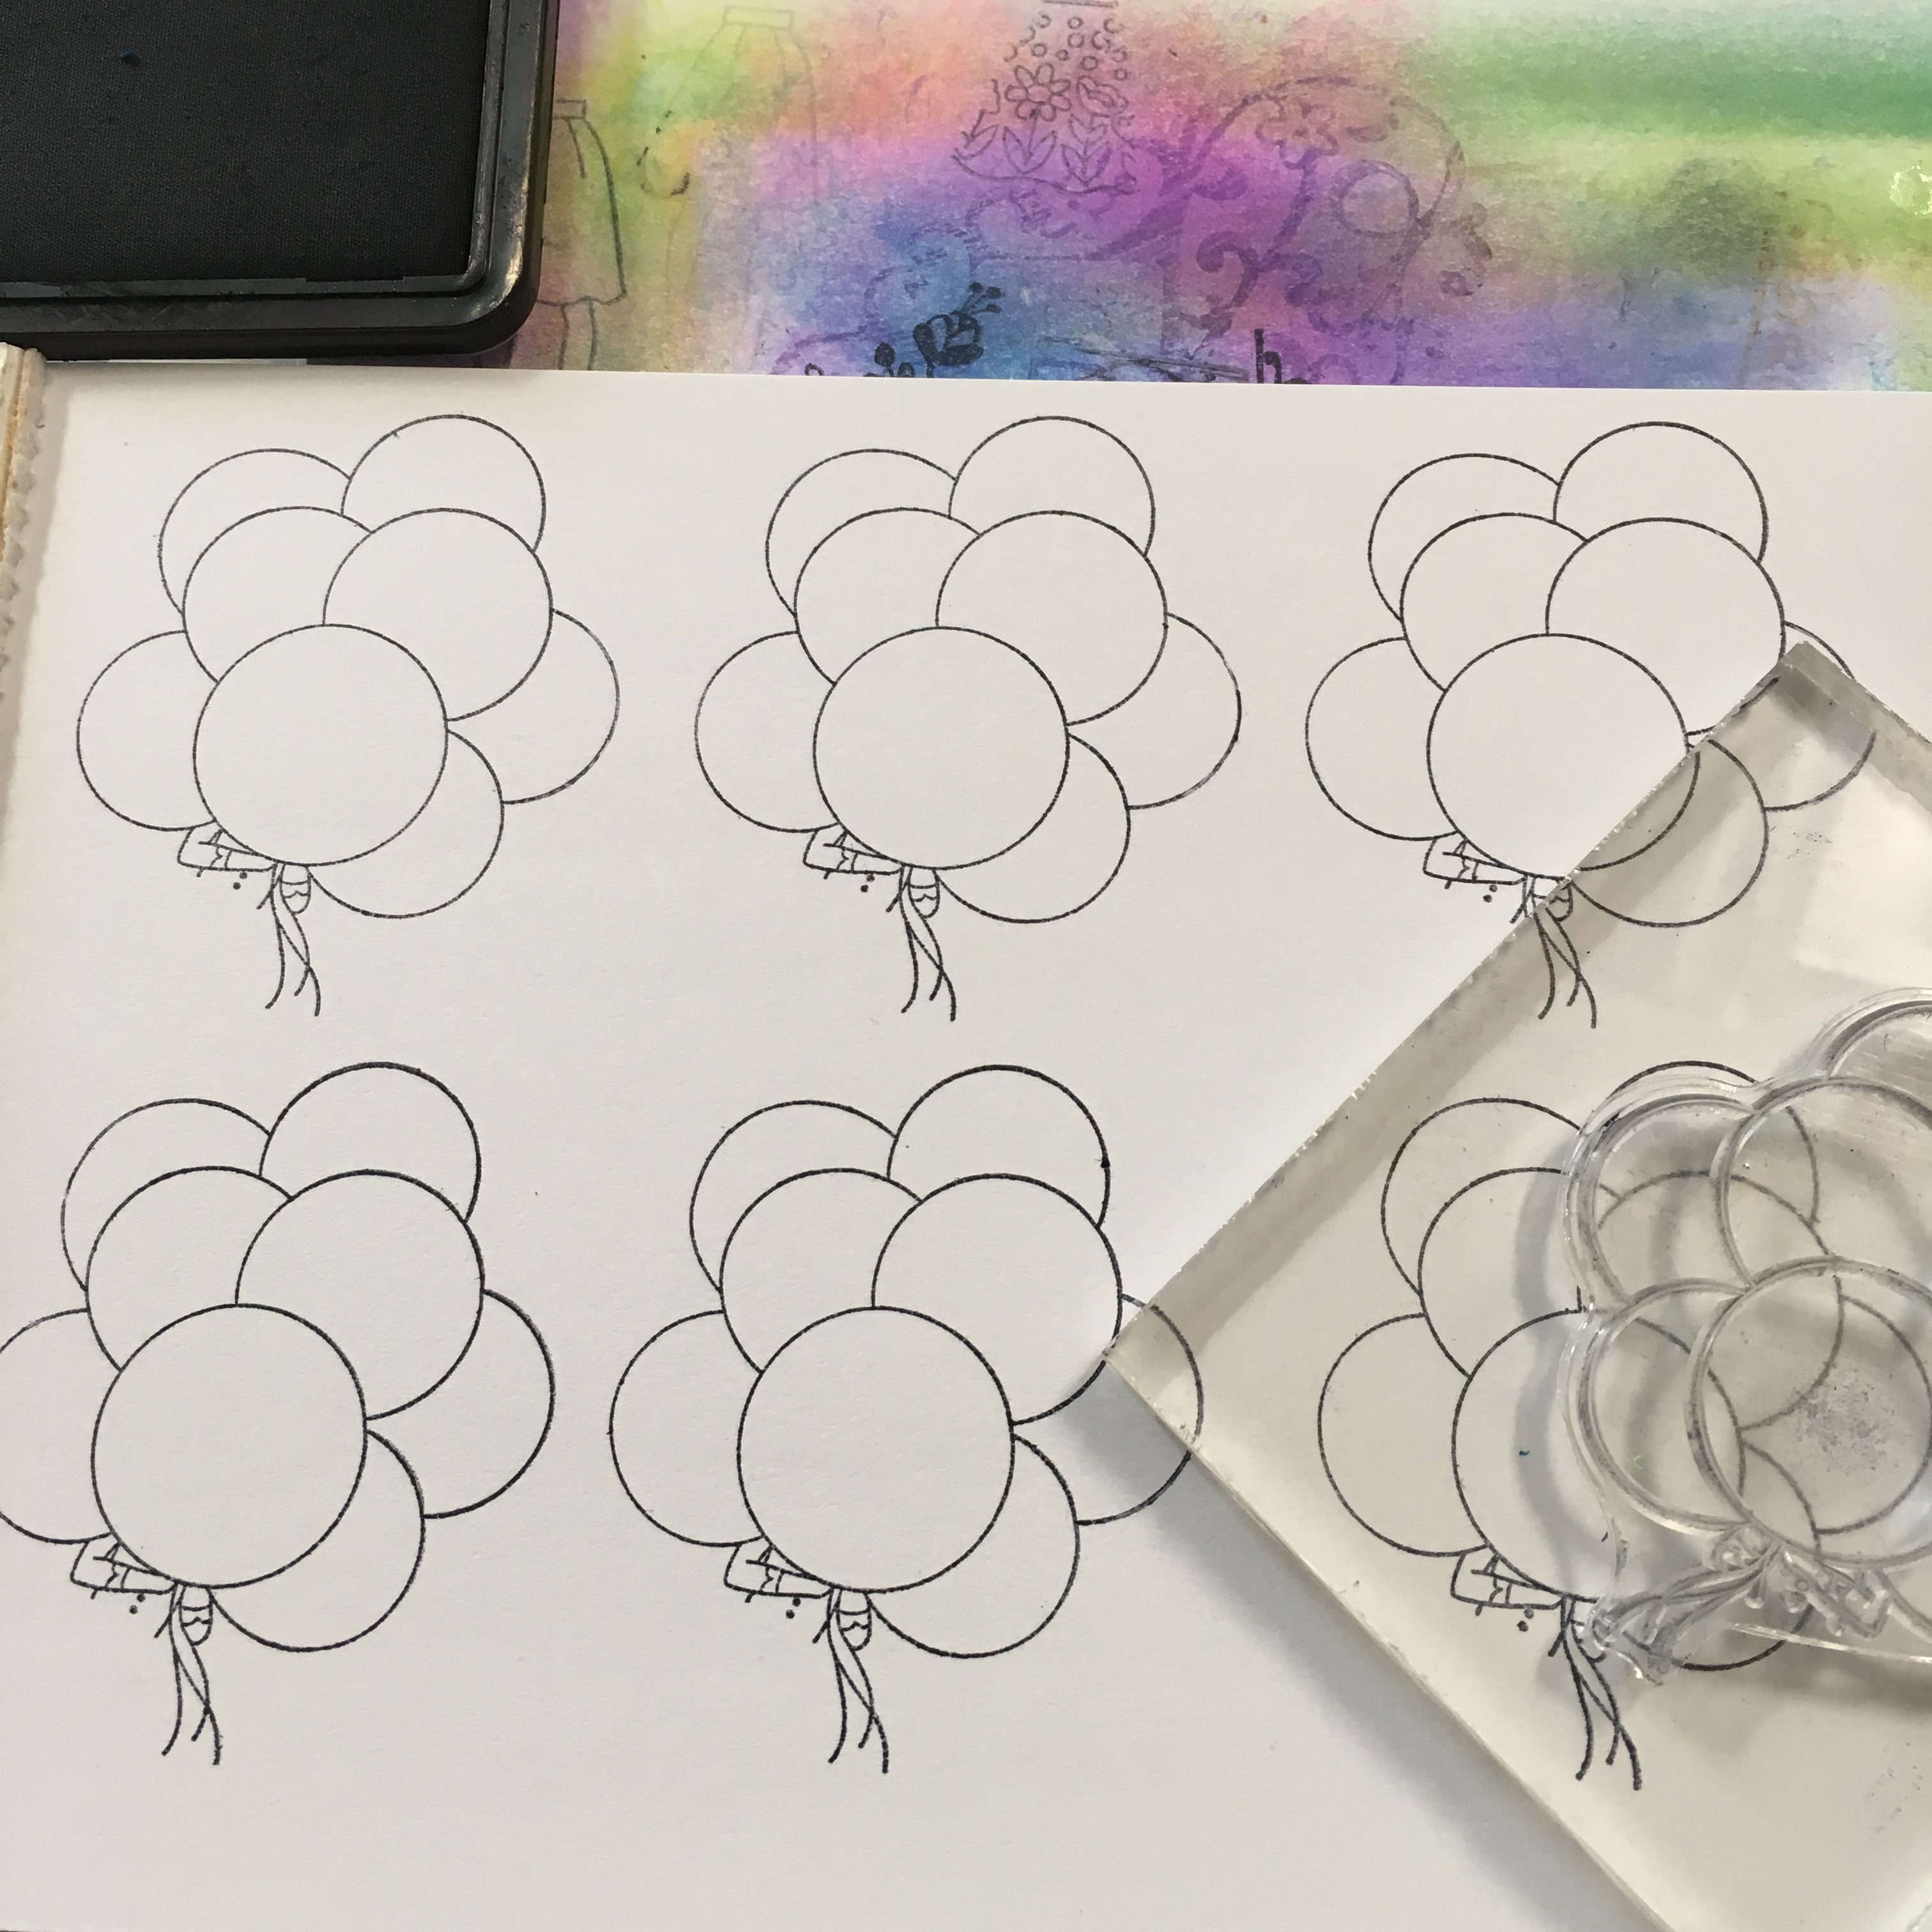 acrylic block and clear stamp, stamping balloons on a white sheet with a black ink